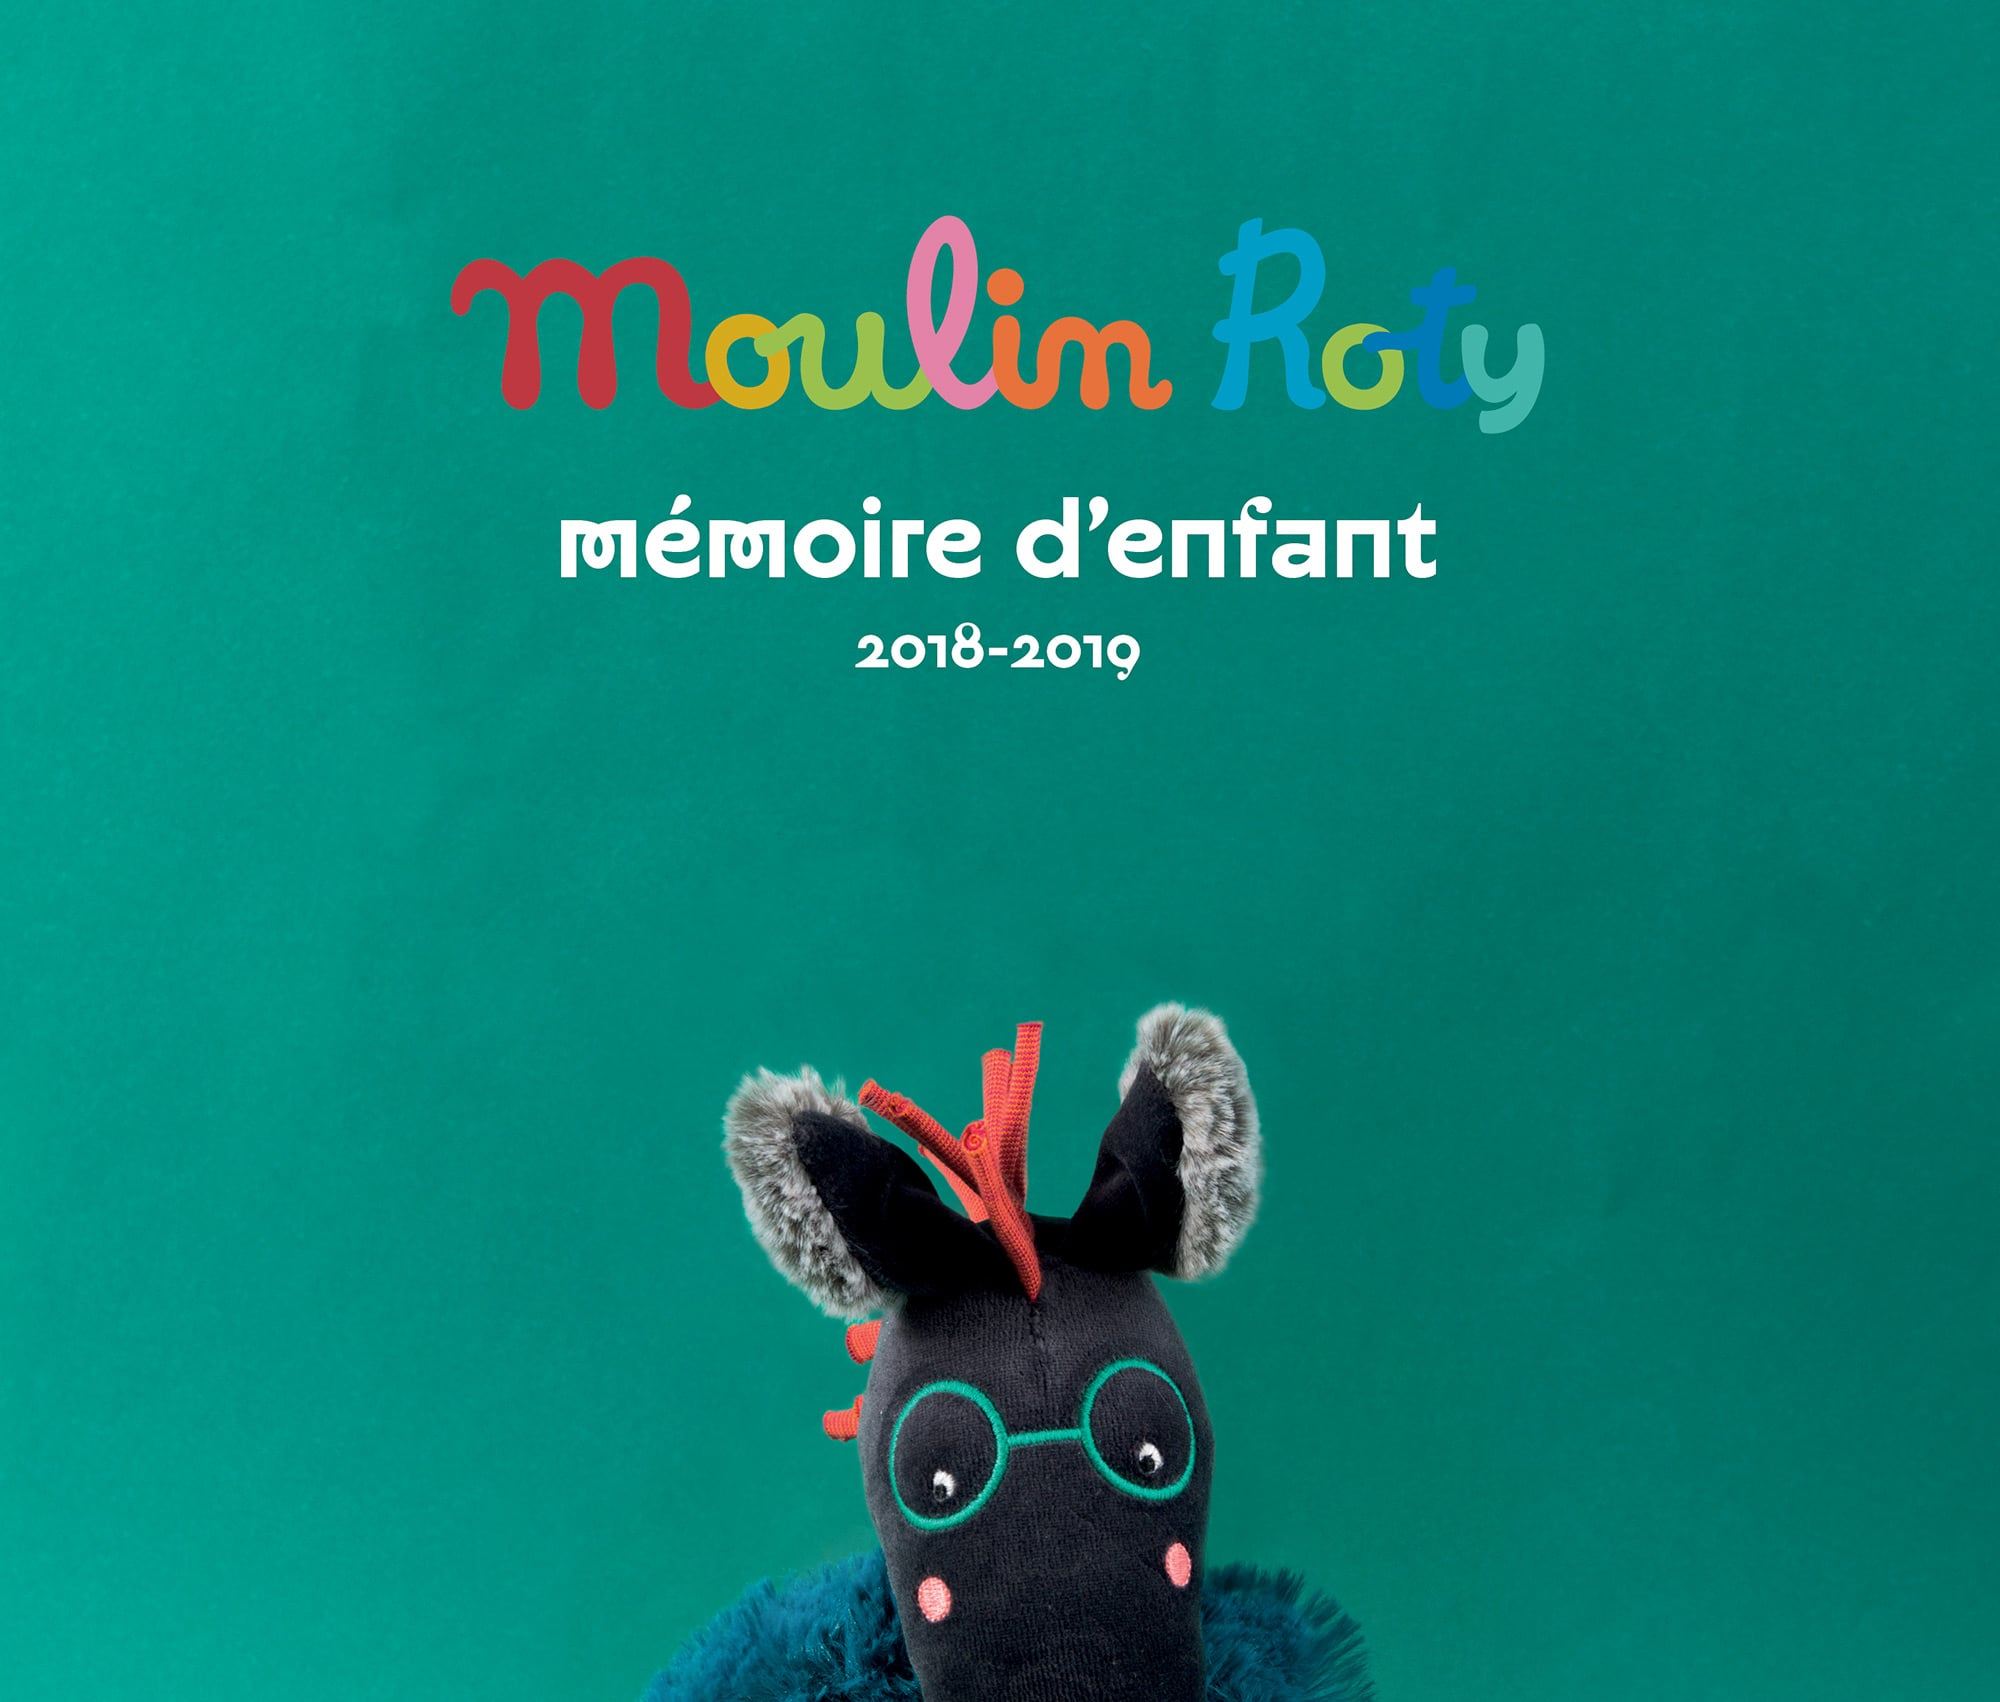 Memoire d'enfant - Moulin Roty 2018 - 2019